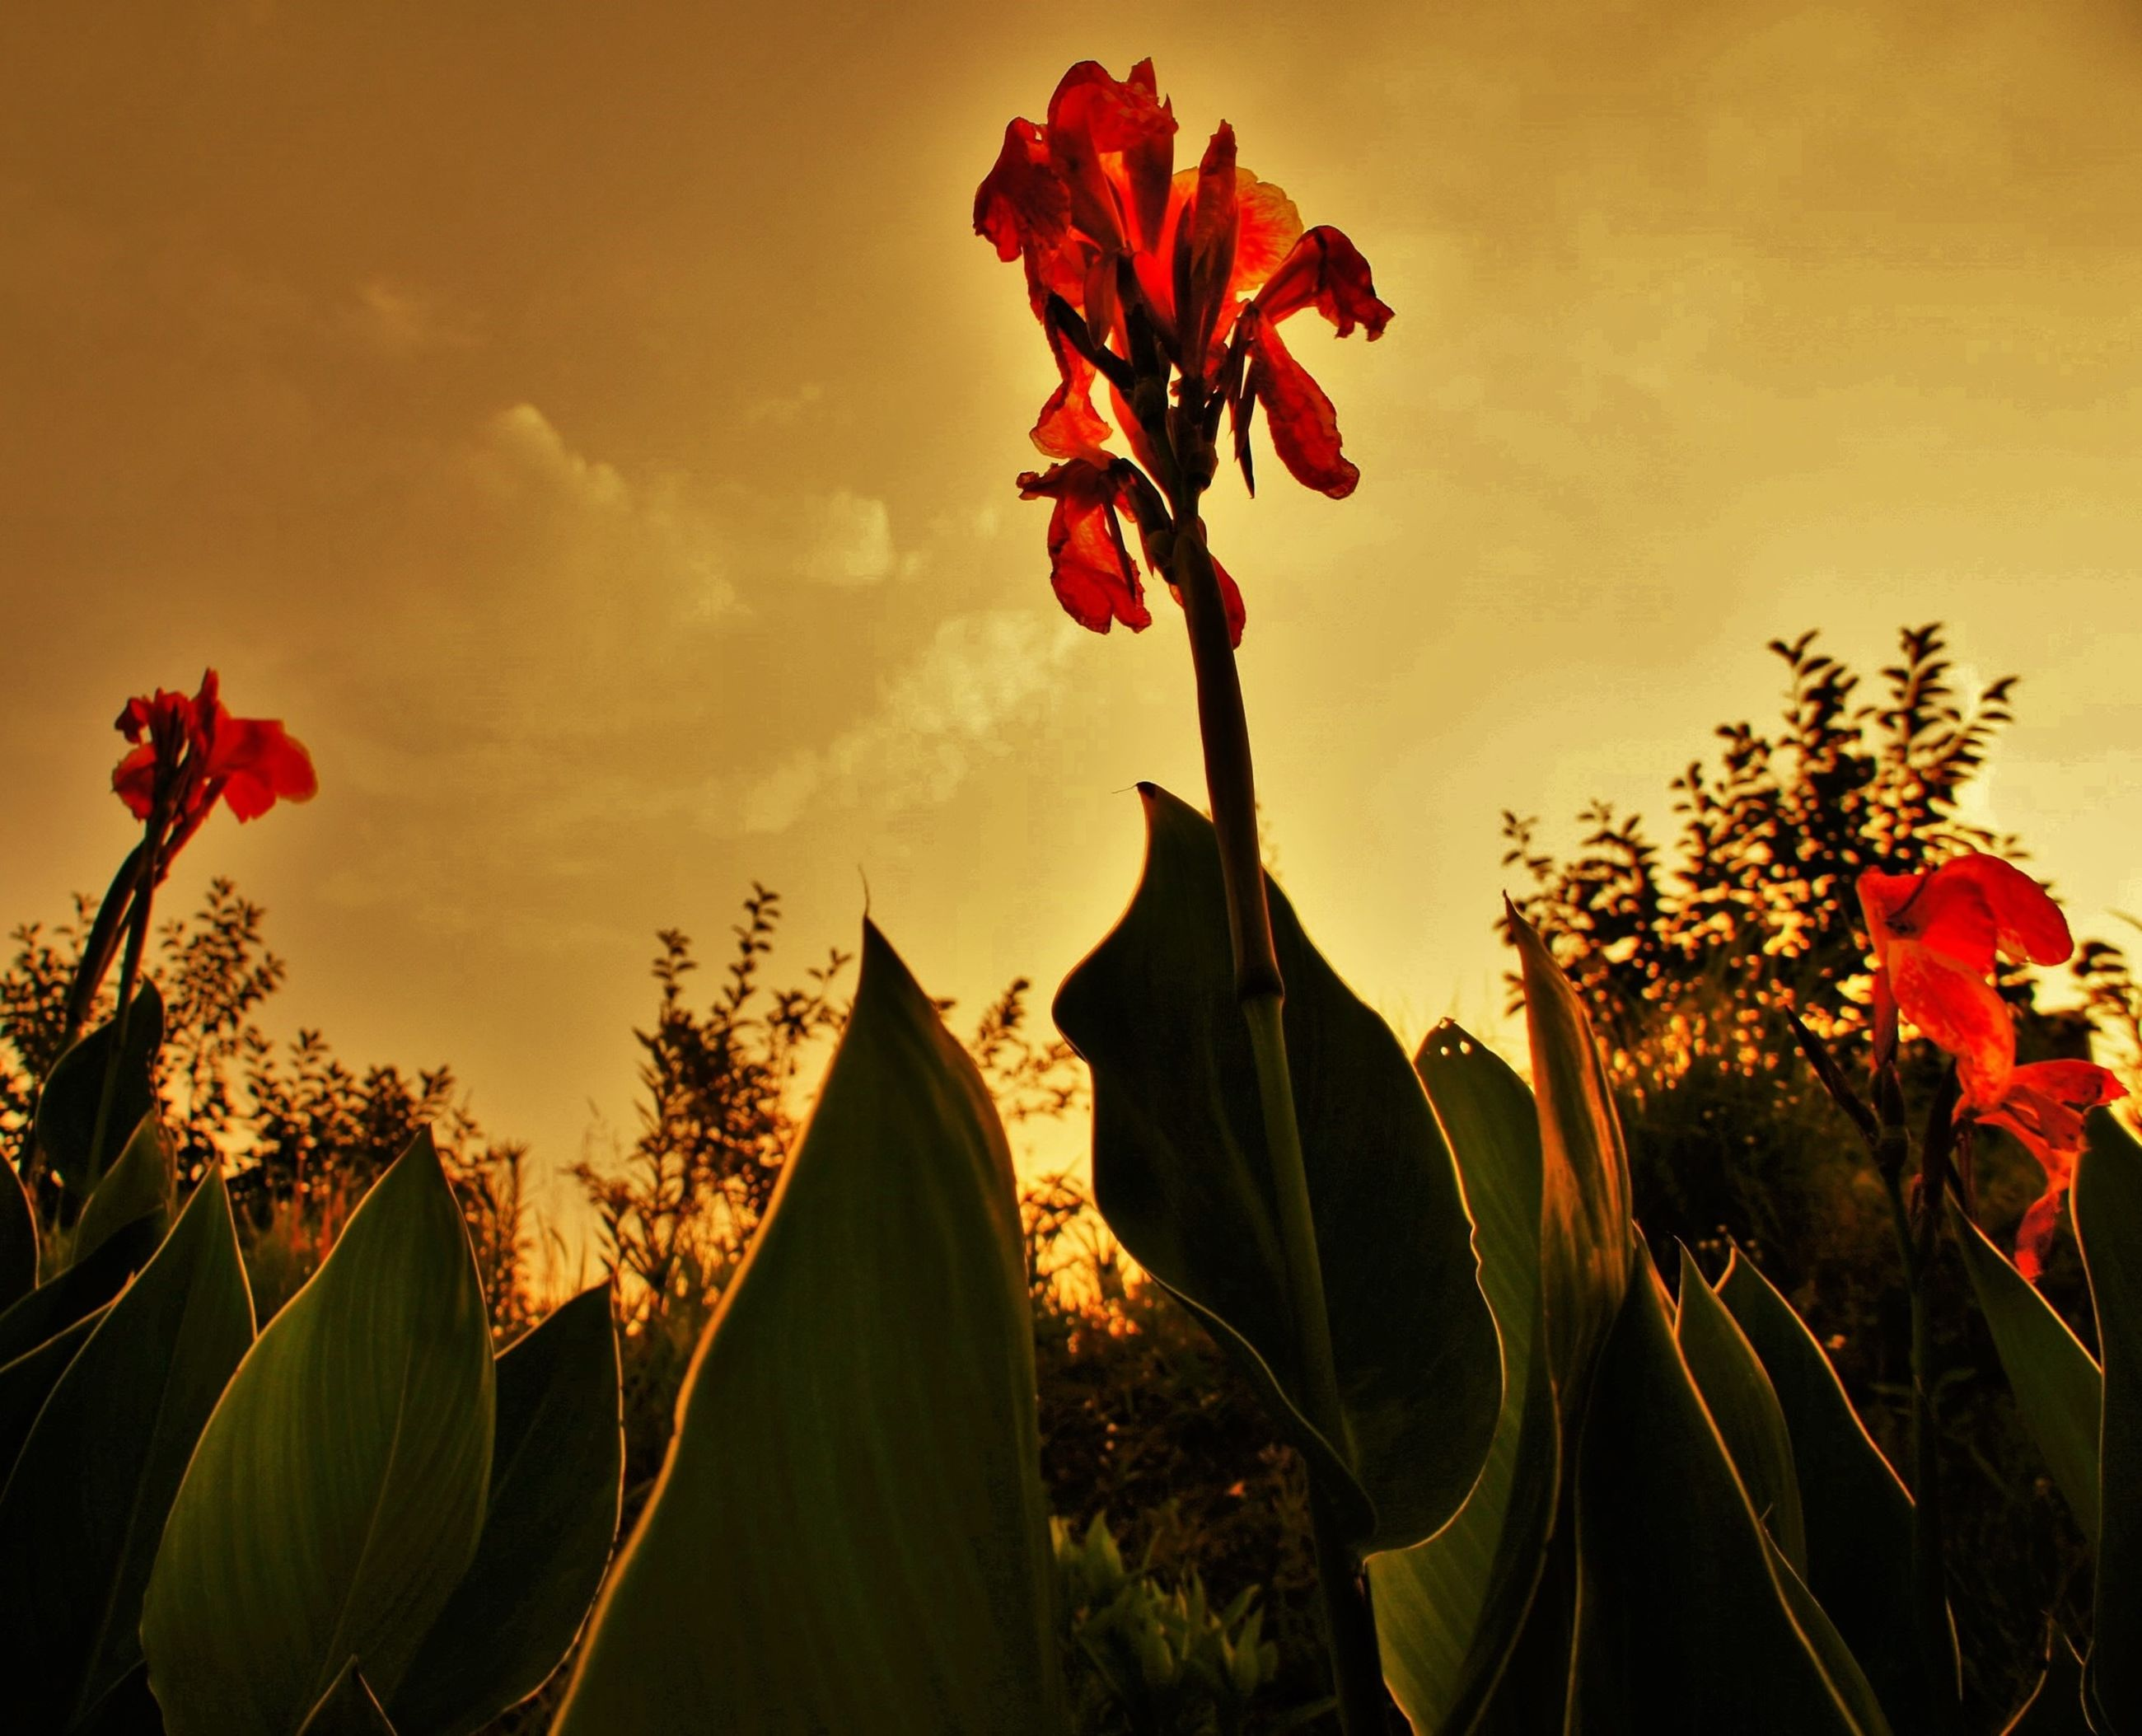 growth, flower, red, freshness, plant, beauty in nature, leaf, nature, fragility, sky, orange color, stem, petal, sunset, flower head, close-up, low angle view, blooming, outdoors, sunlight